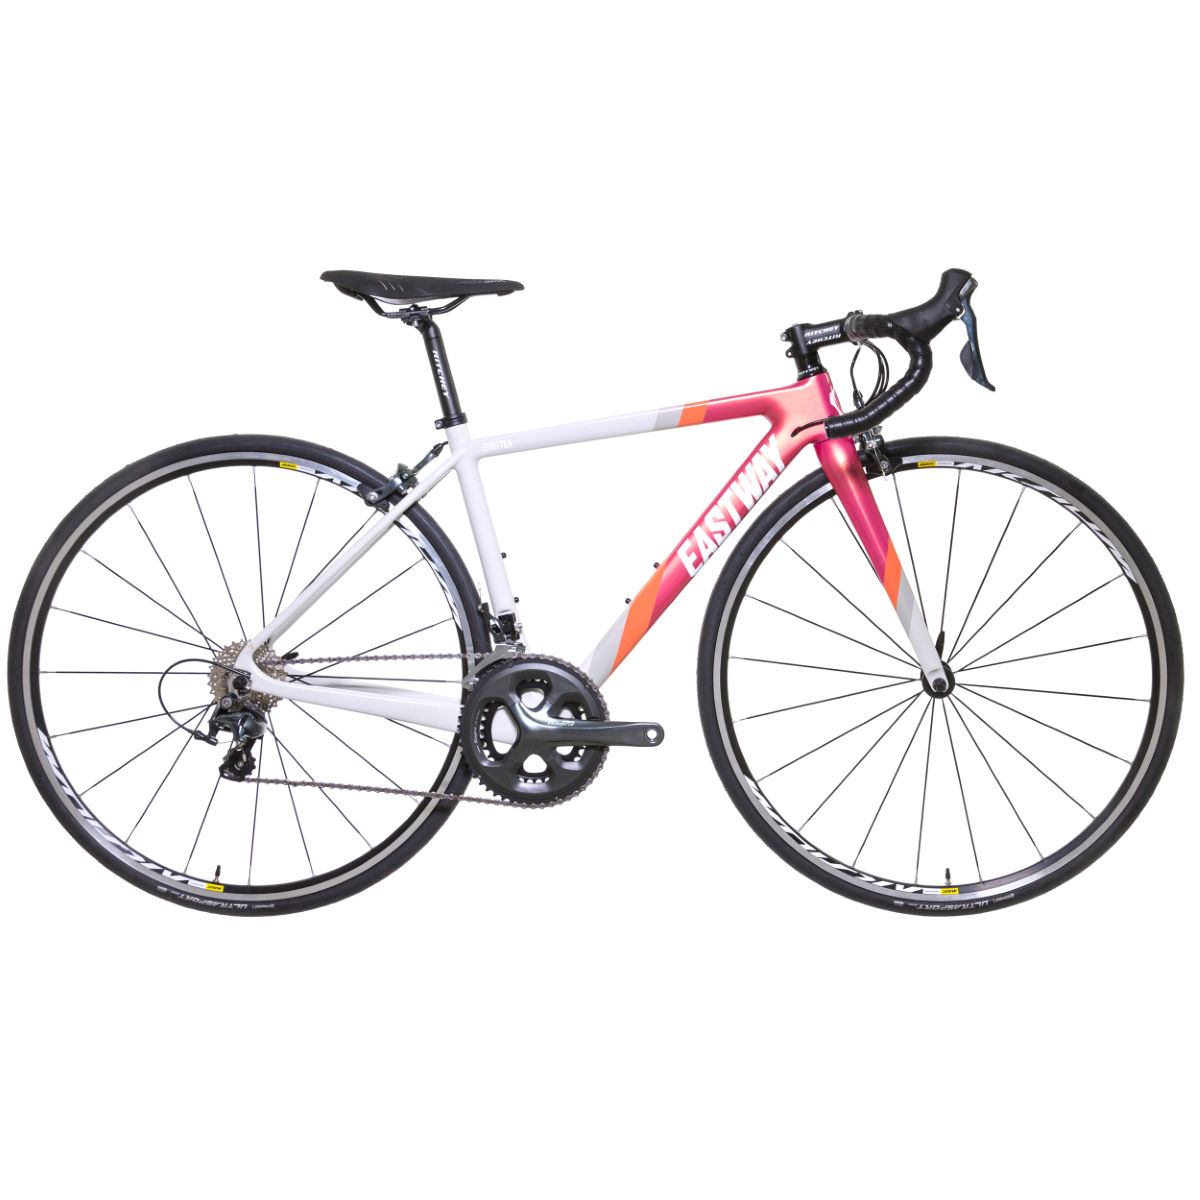 Vélo de route Femme Eastway Emiiter R4 (Tiagra, 2017) - 45cm Stock Bike Grey/Pink/Orange Vélos de route